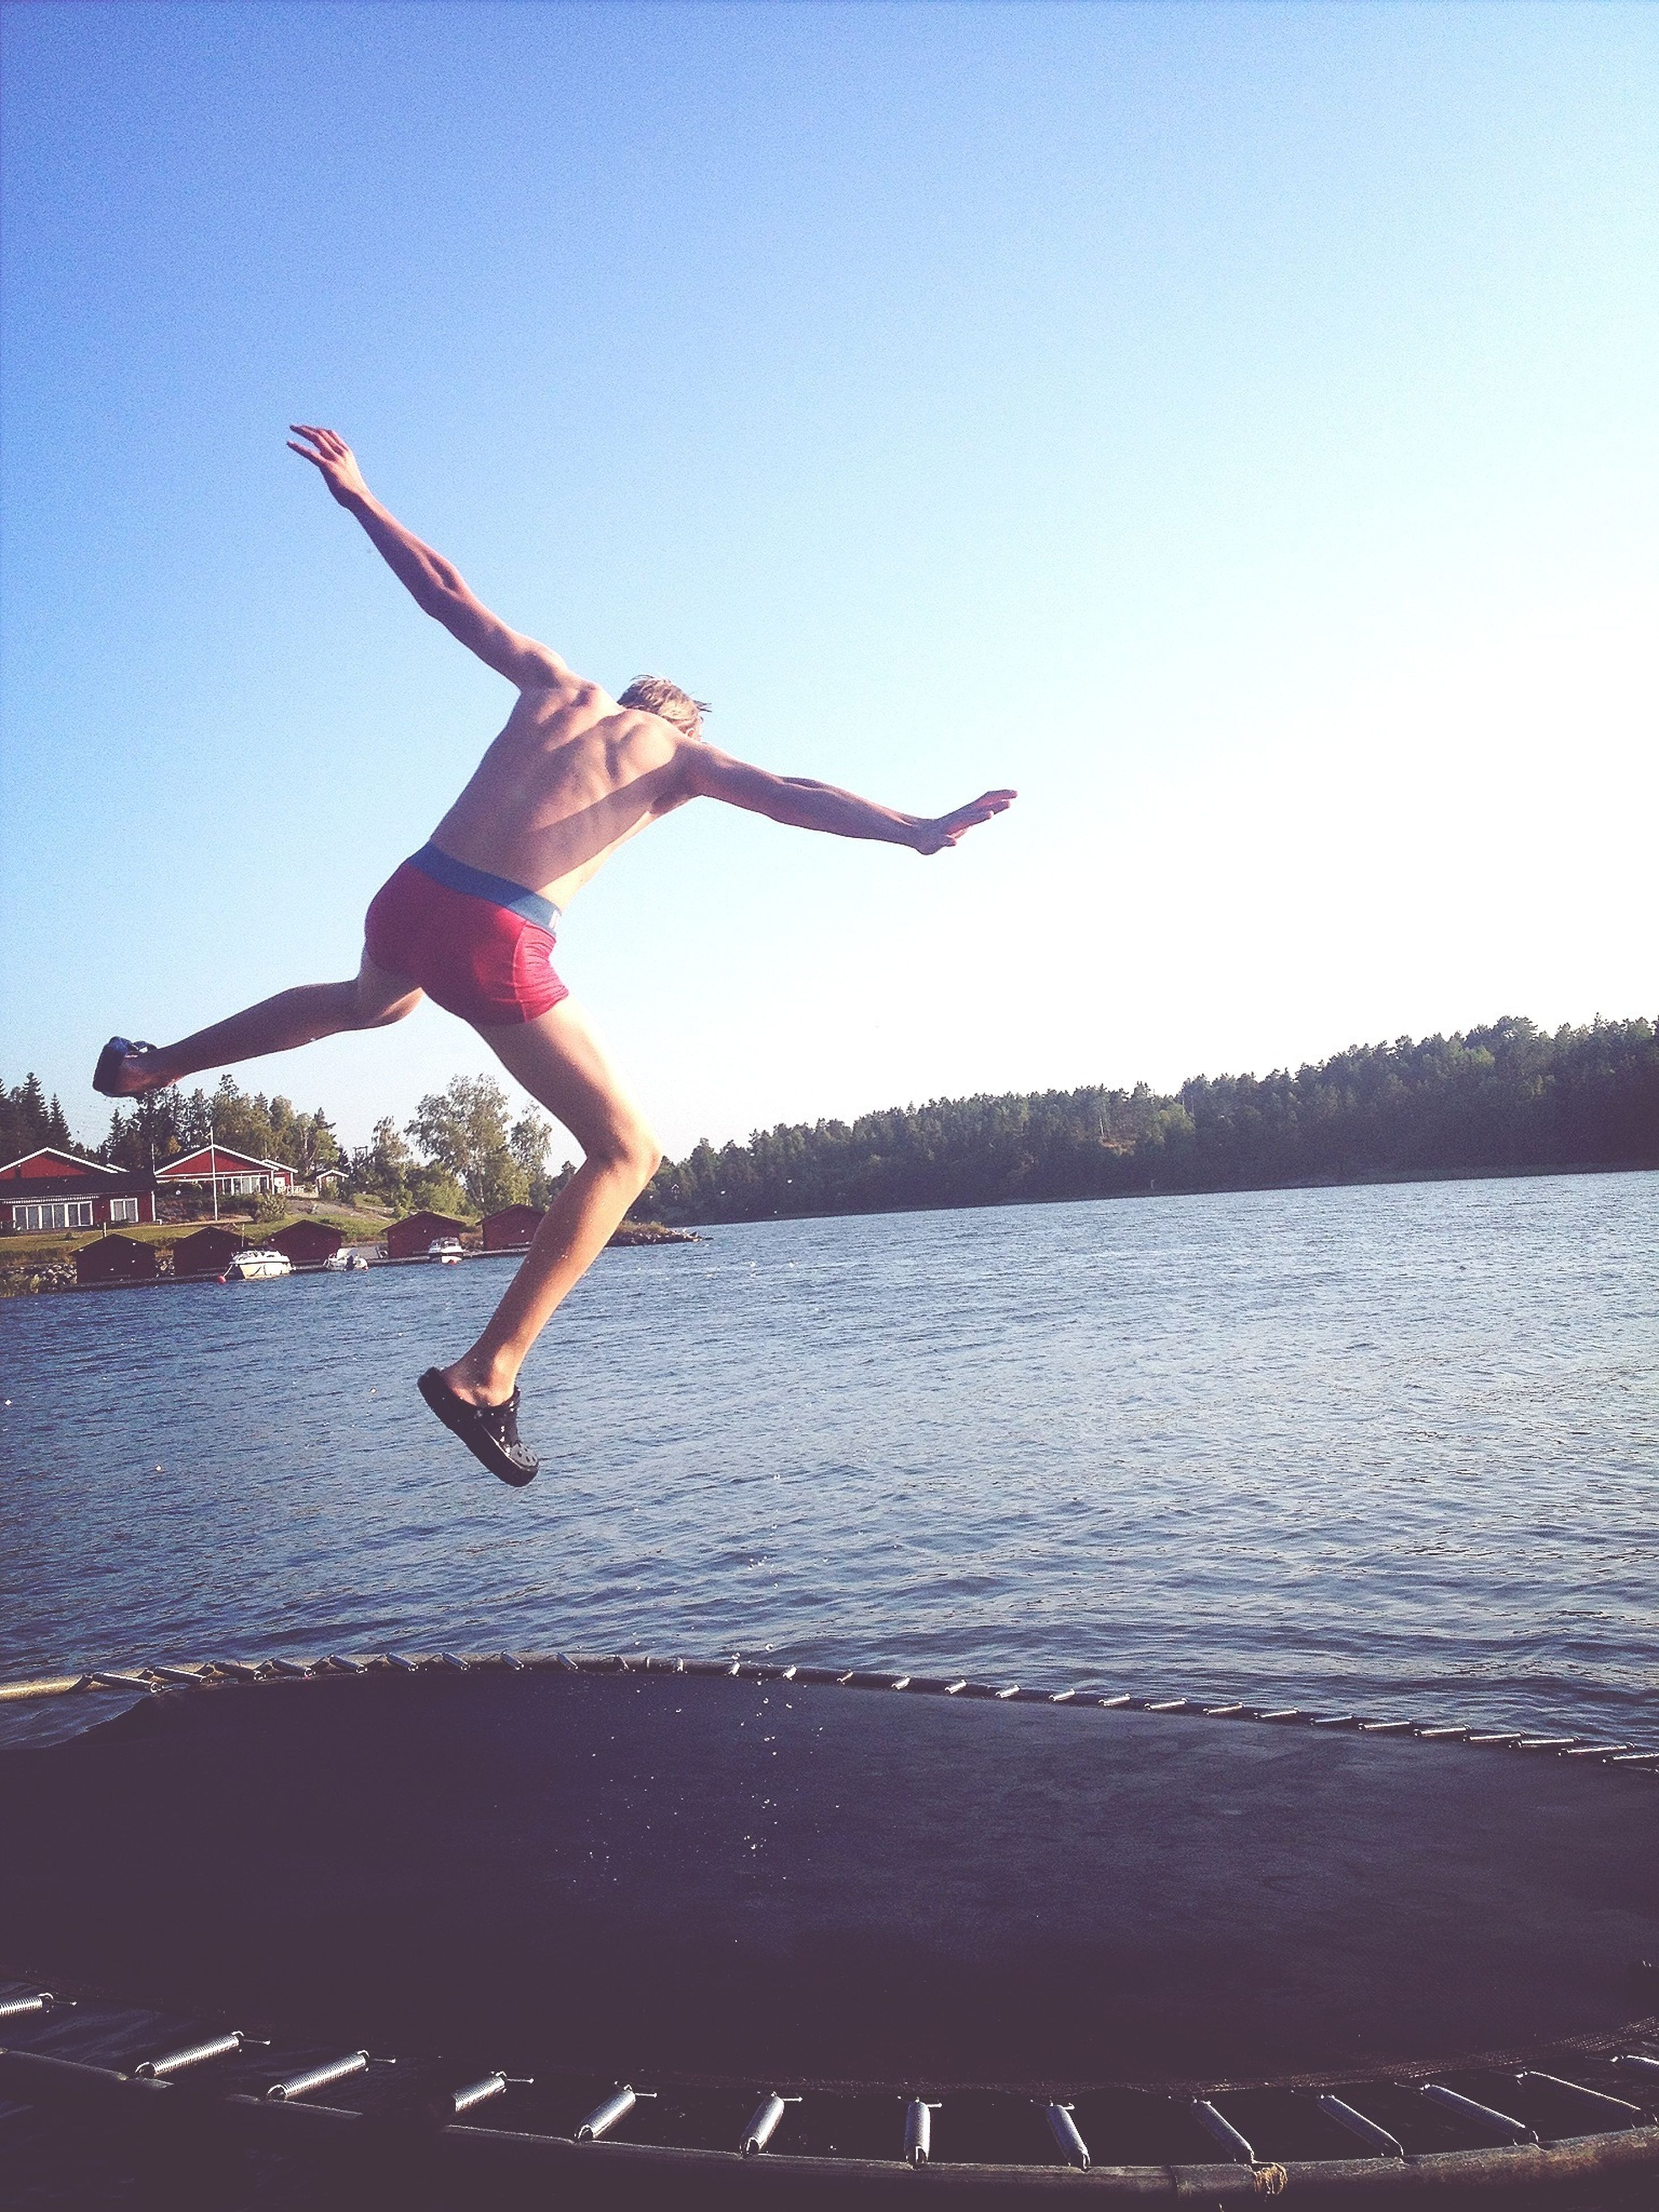 water, mid-air, clear sky, lifestyles, leisure activity, full length, flying, arms outstretched, sky, jumping, motion, sea, freedom, young adult, skill, copy space, blue, holding